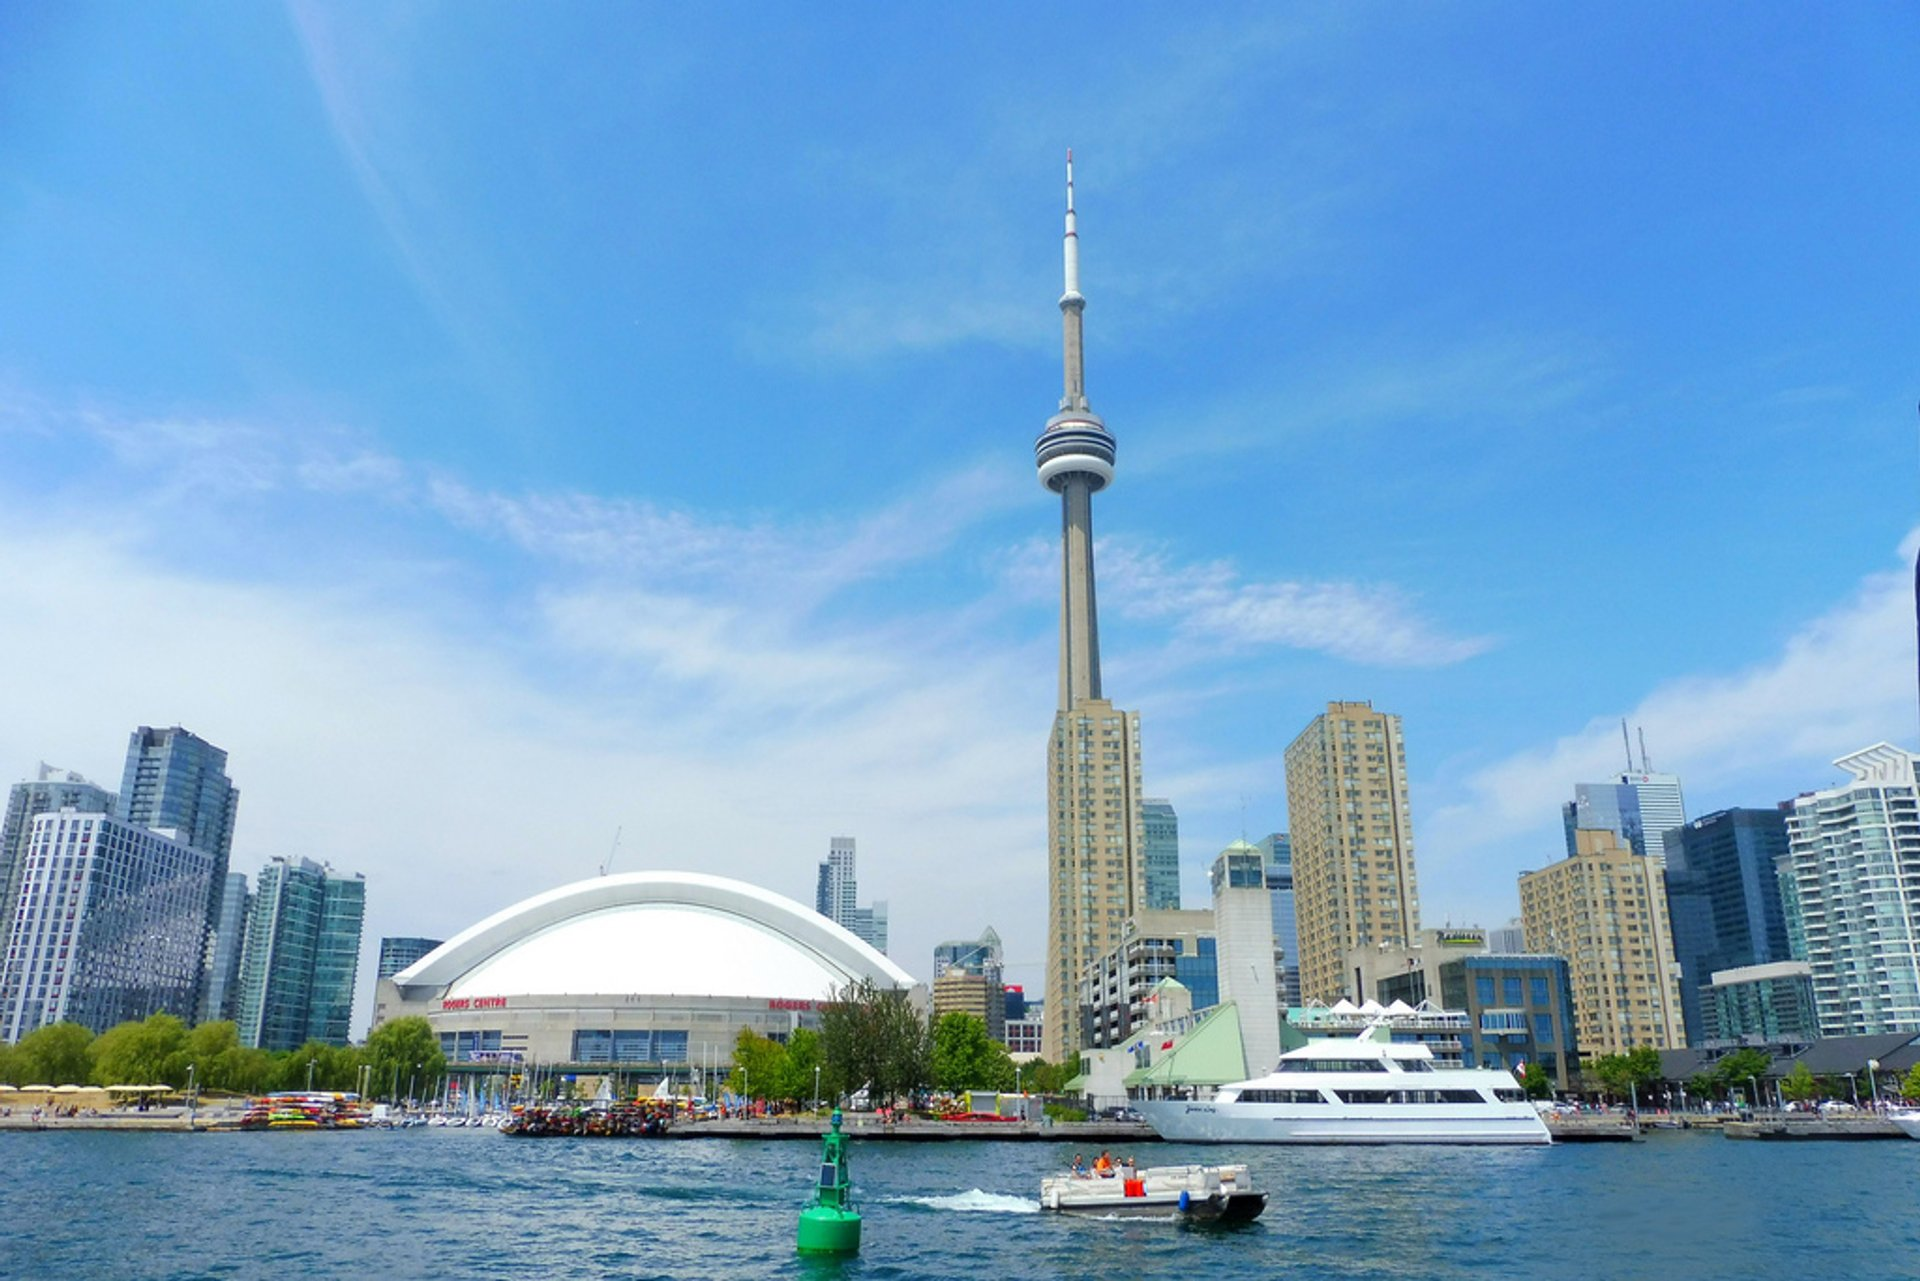 Boat Cruises in Toronto - Best Season 2020